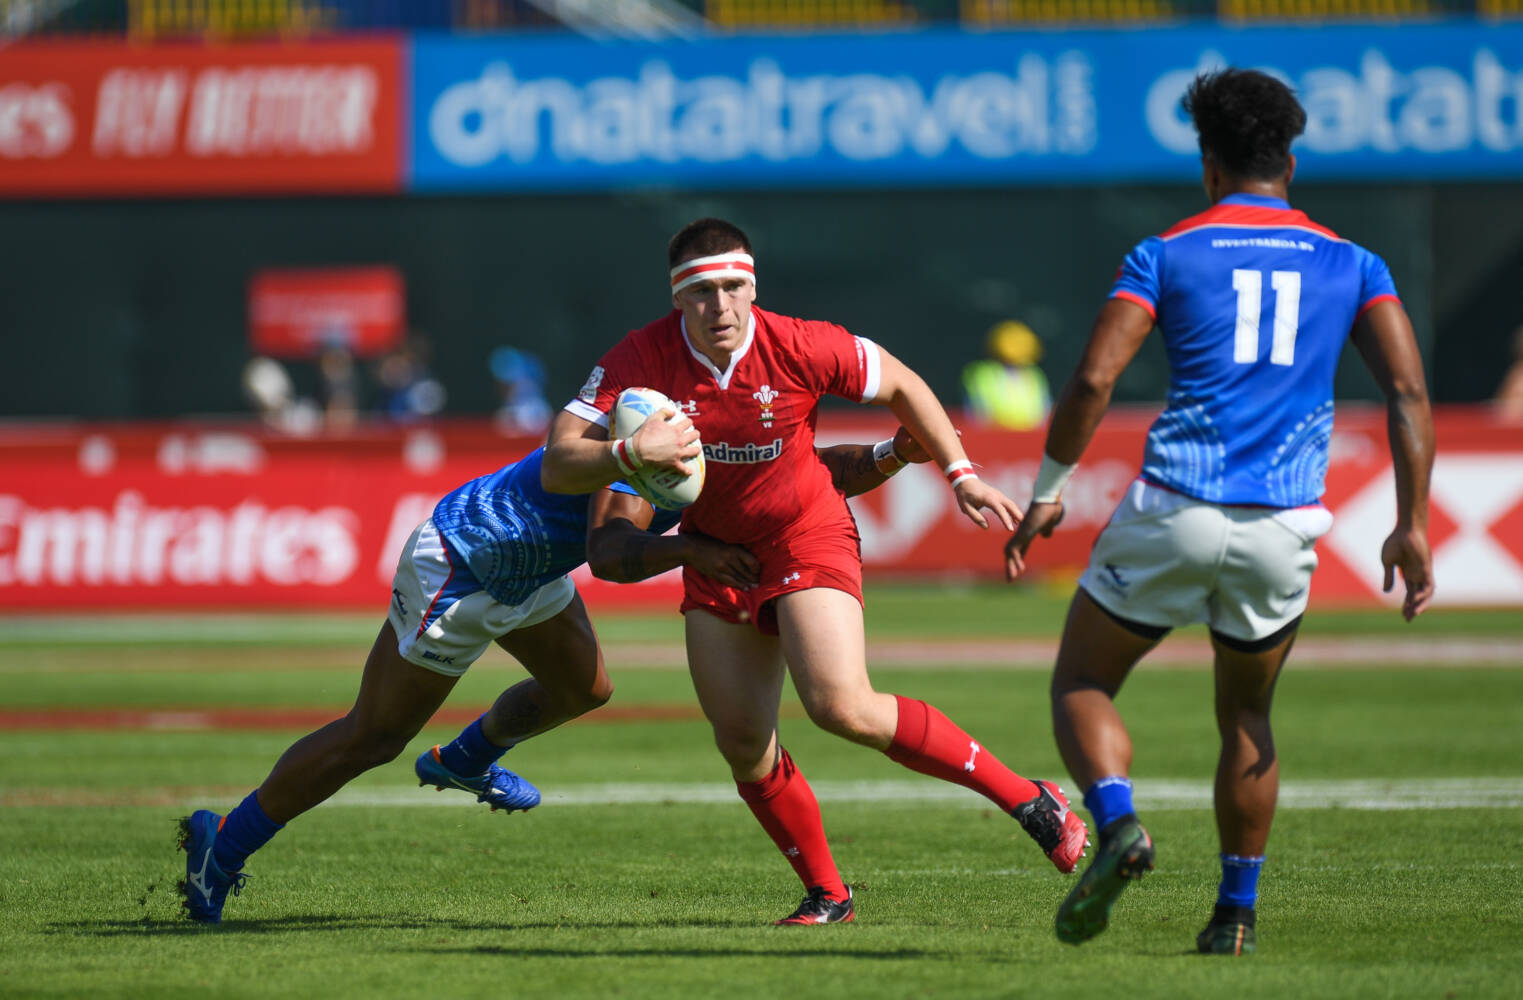 Wales see out Dubai on a positive note